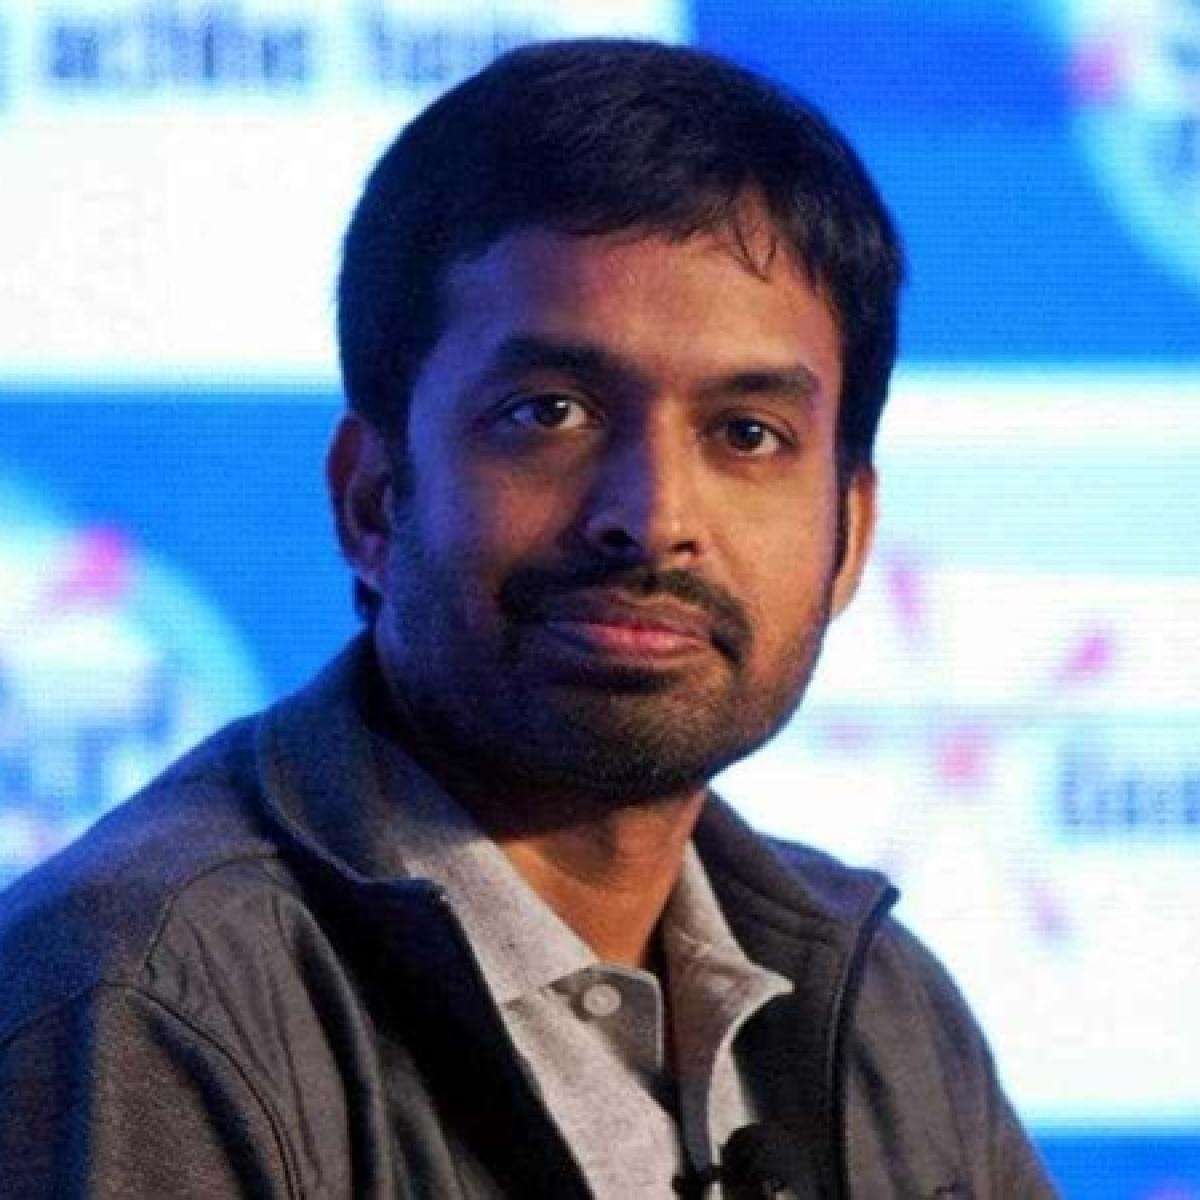 Will continue to coach: Pullela Gopichand